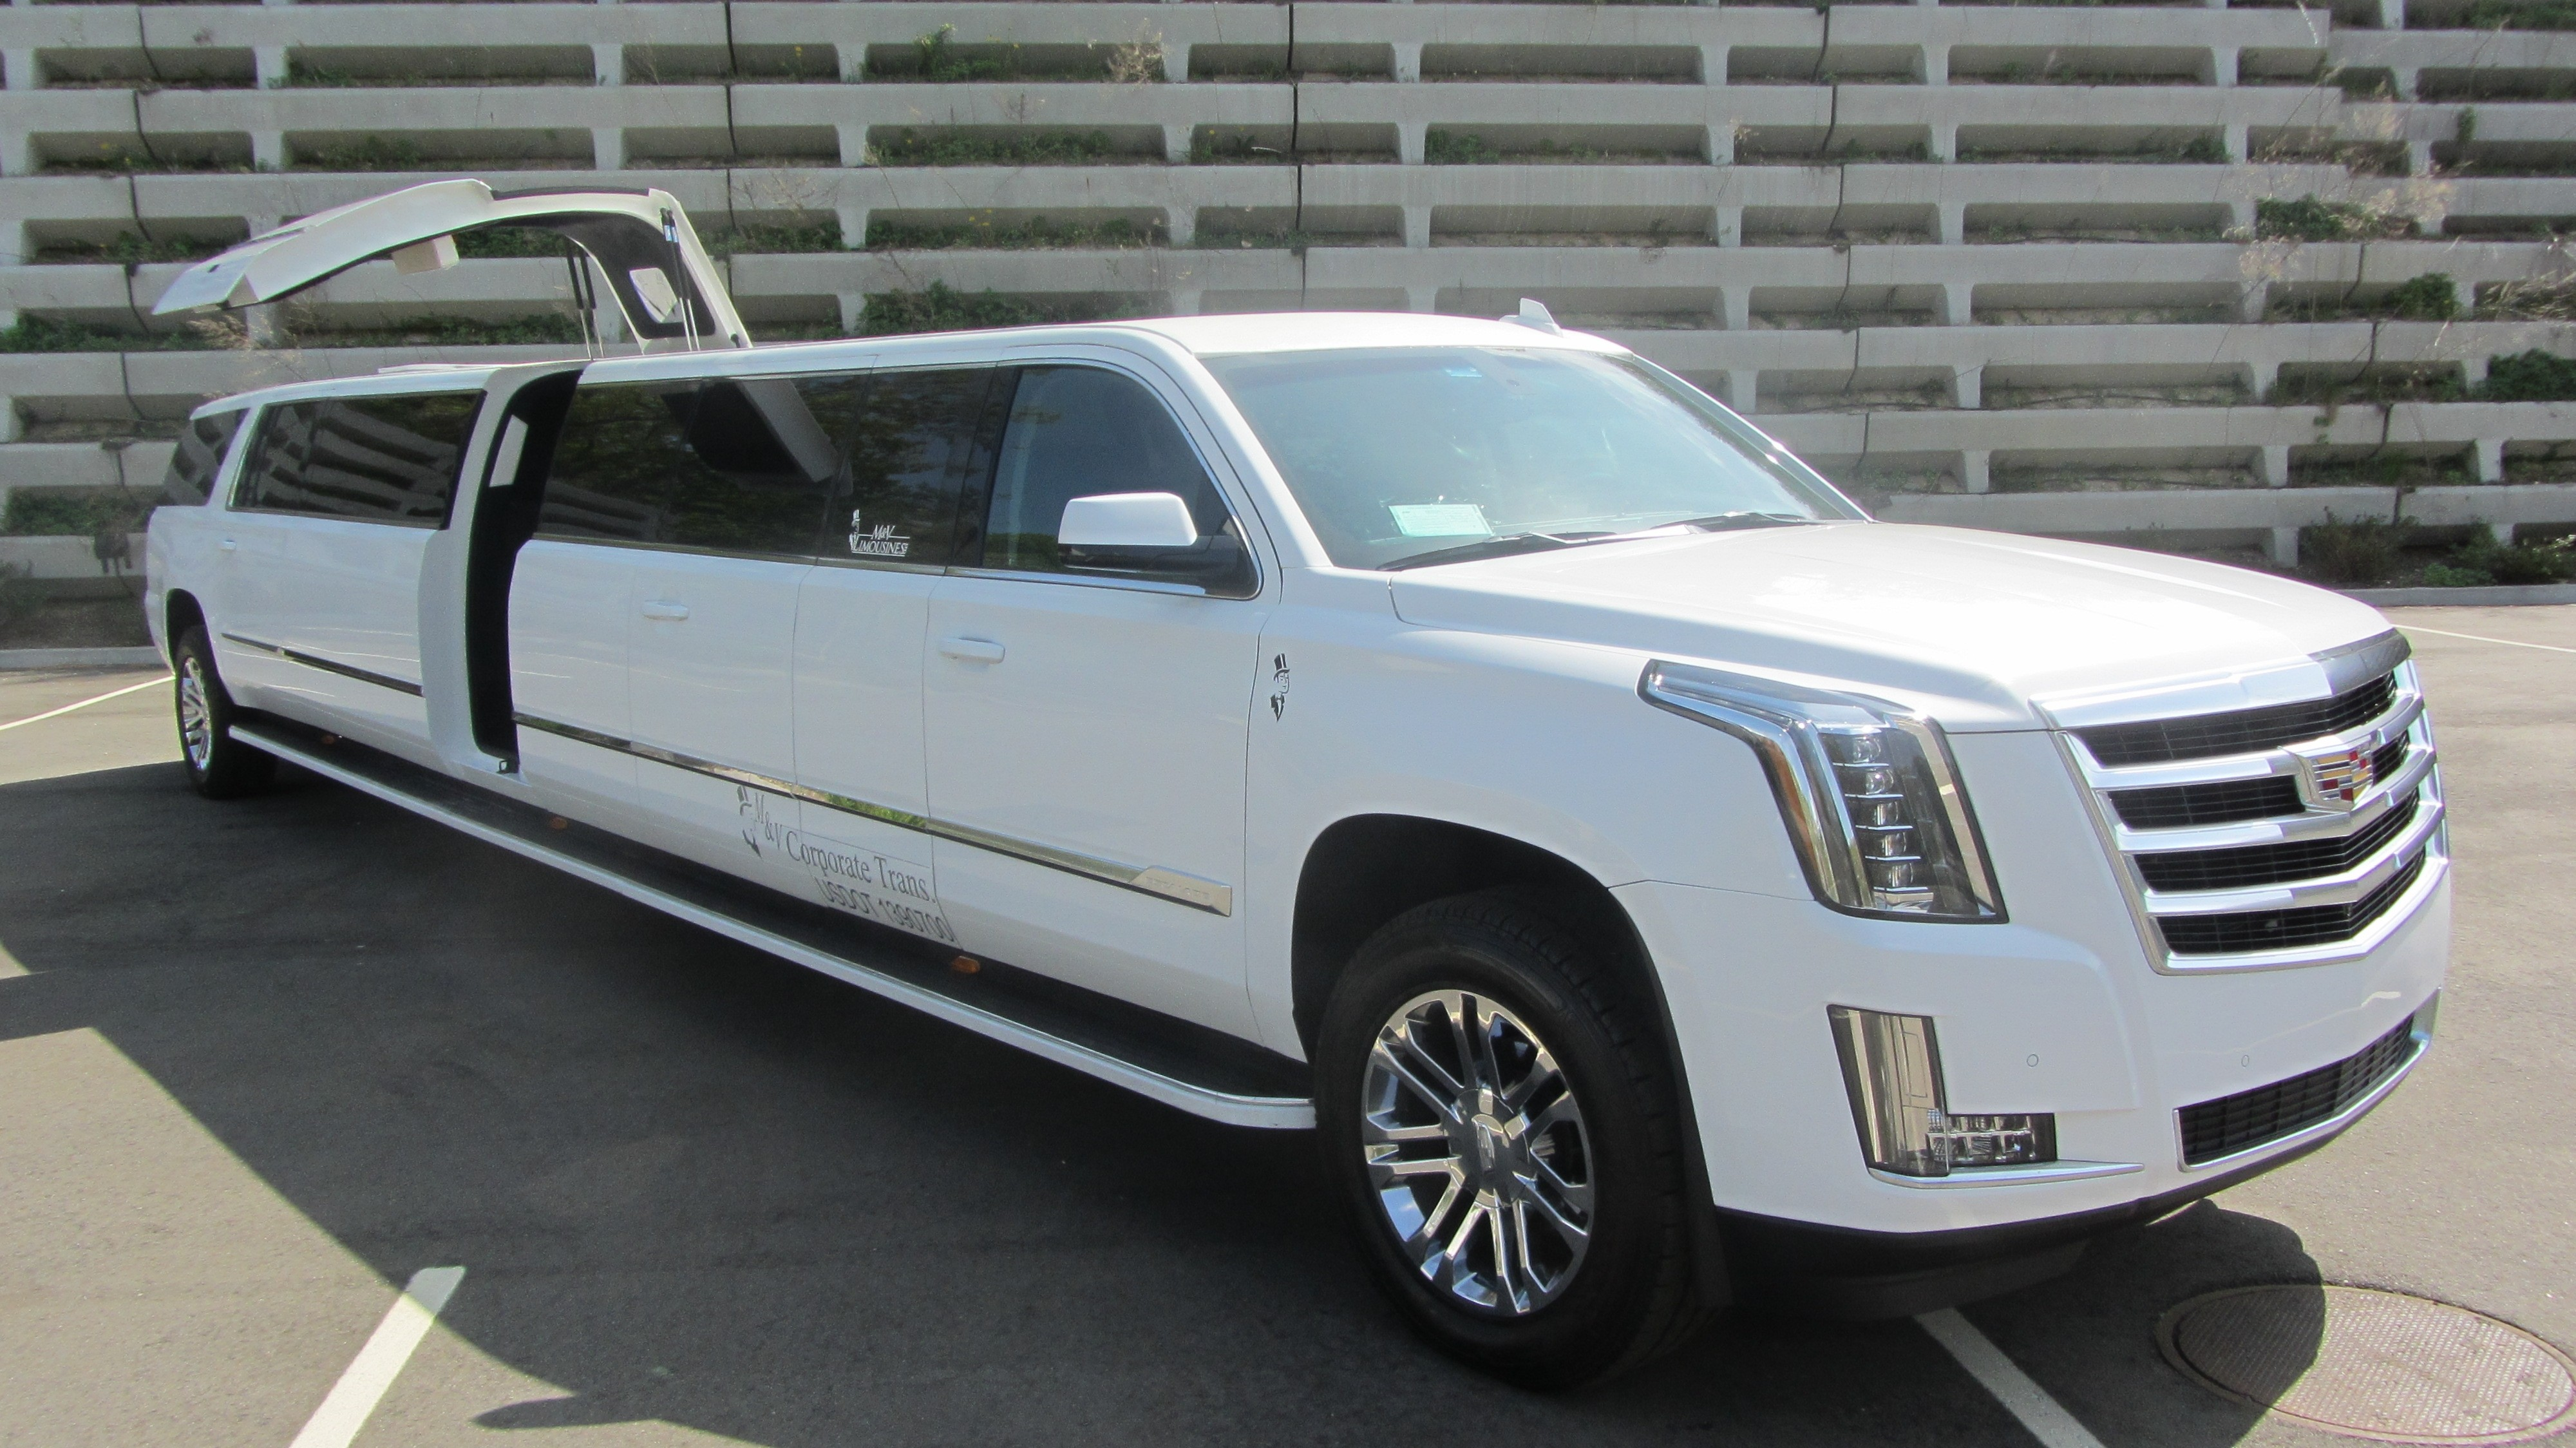 2016 Cadillac Escalade Limousine with Marble floors Jet and 5th door 21 passenger